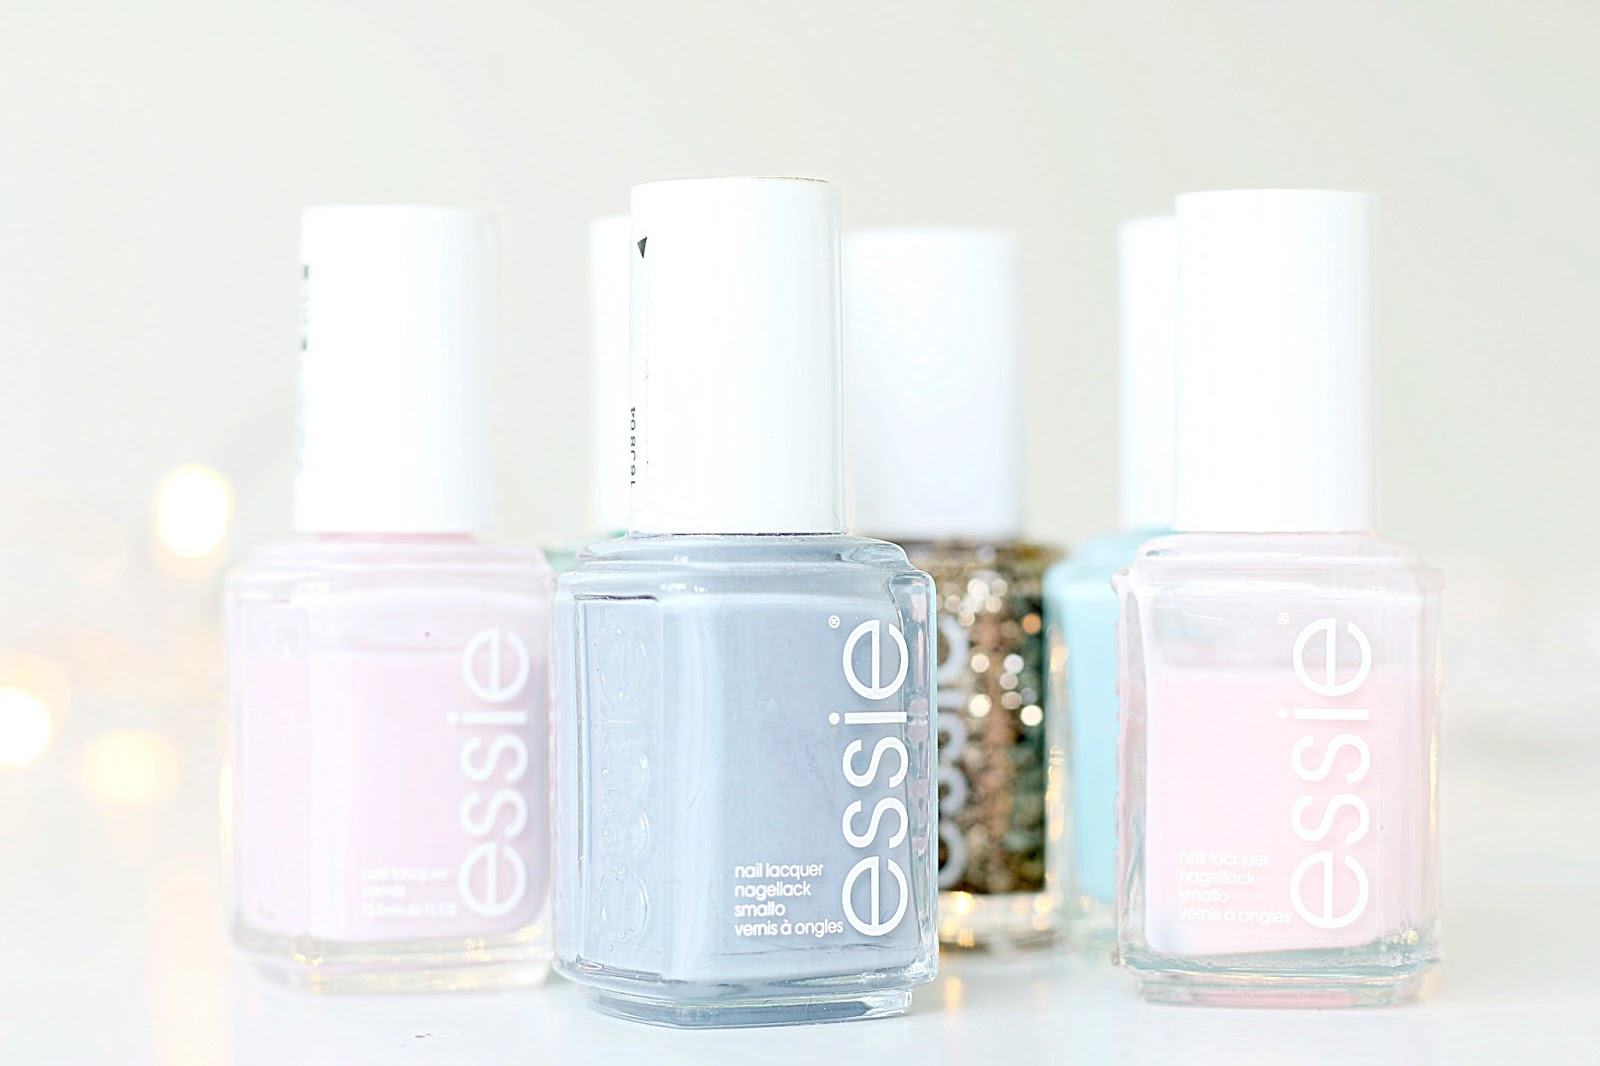 Great Nail Polish Game Online Tiny Nail Art New Design 2014 Solid Stop The Bite Nail Polish Blue Glitter Nail Art Young Where To Purchase Opi Nail Polish GreenReviews On Gel Nail Polish My Favourite Essie Colours   Dizzybrunette3